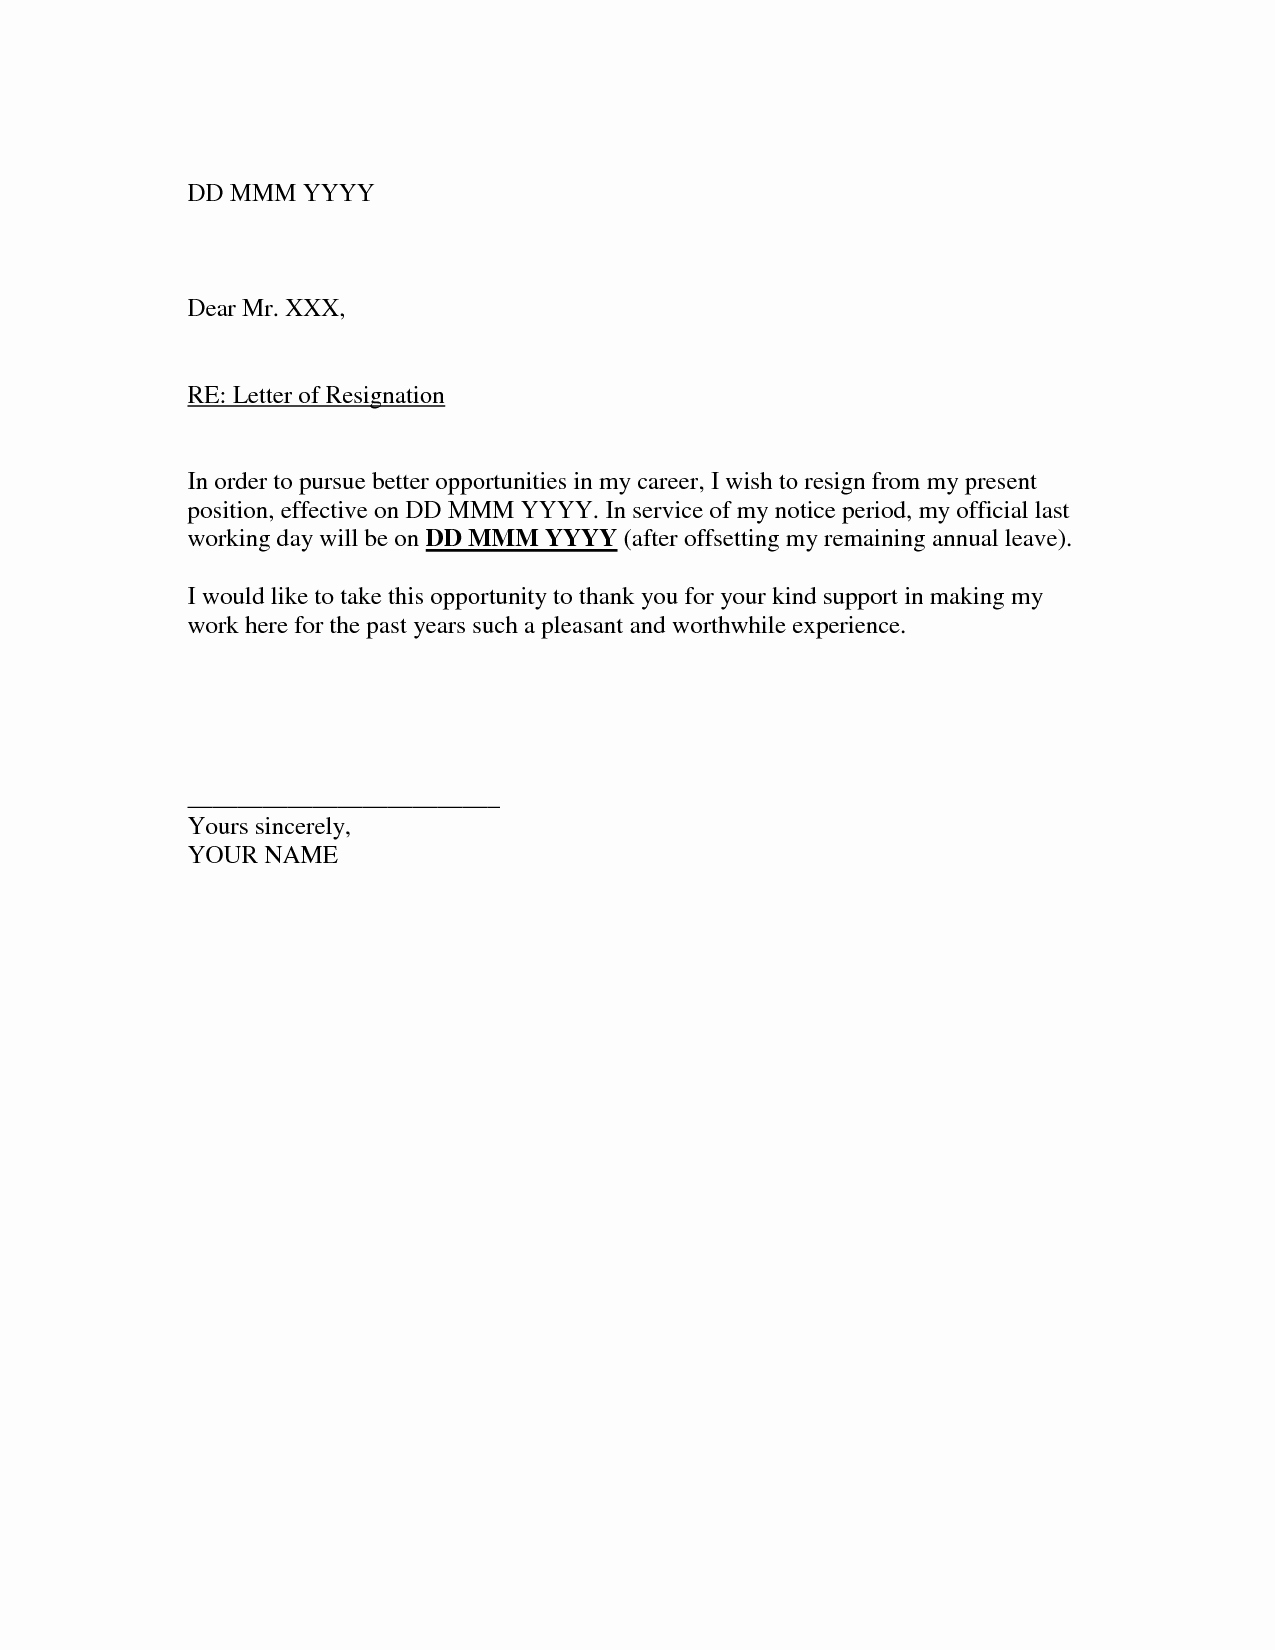 Letter Of Resignation Templates Luxury Resignation Letter Template